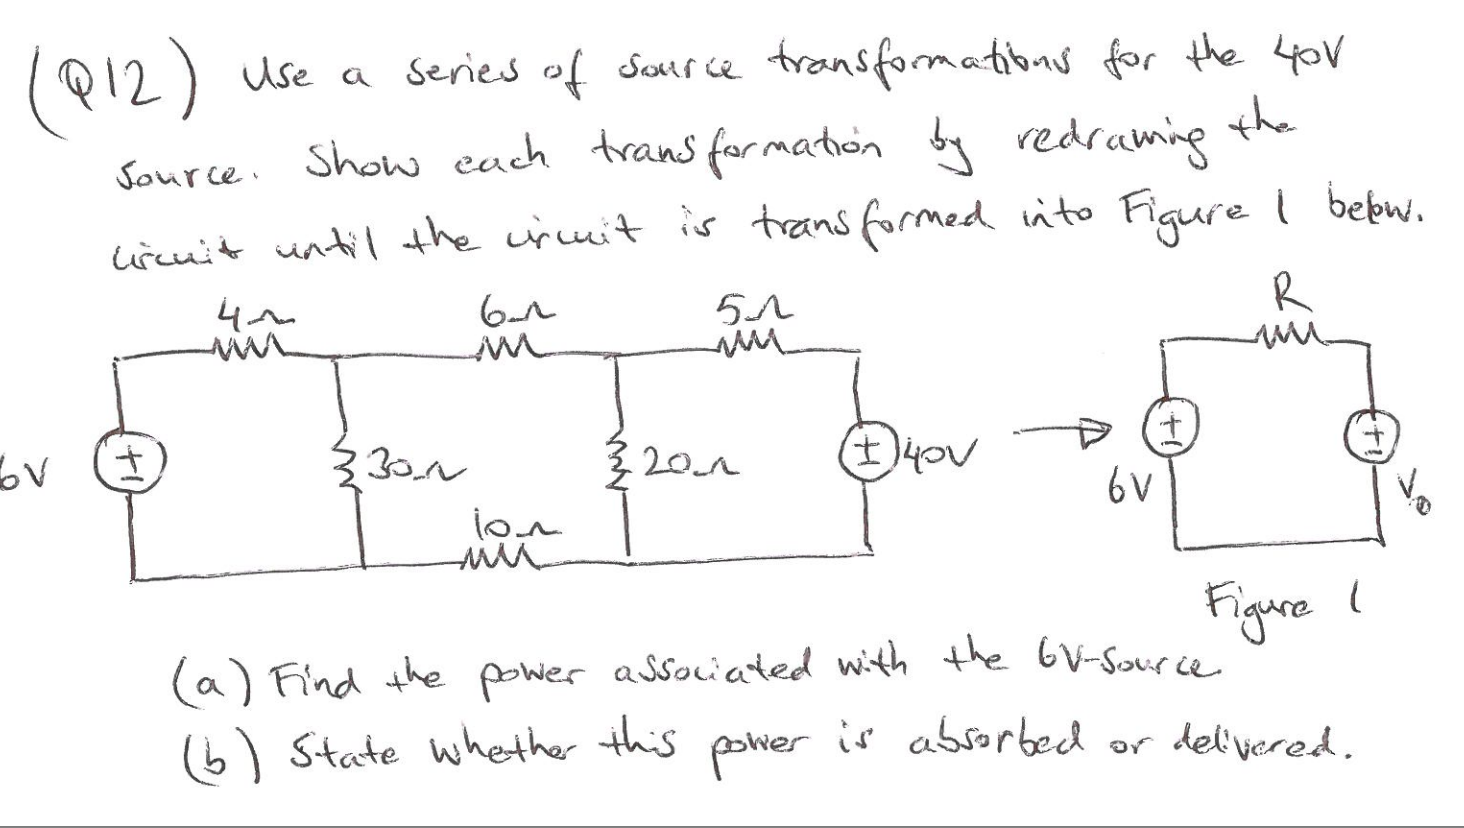 Use a series of source transformations for the 40V